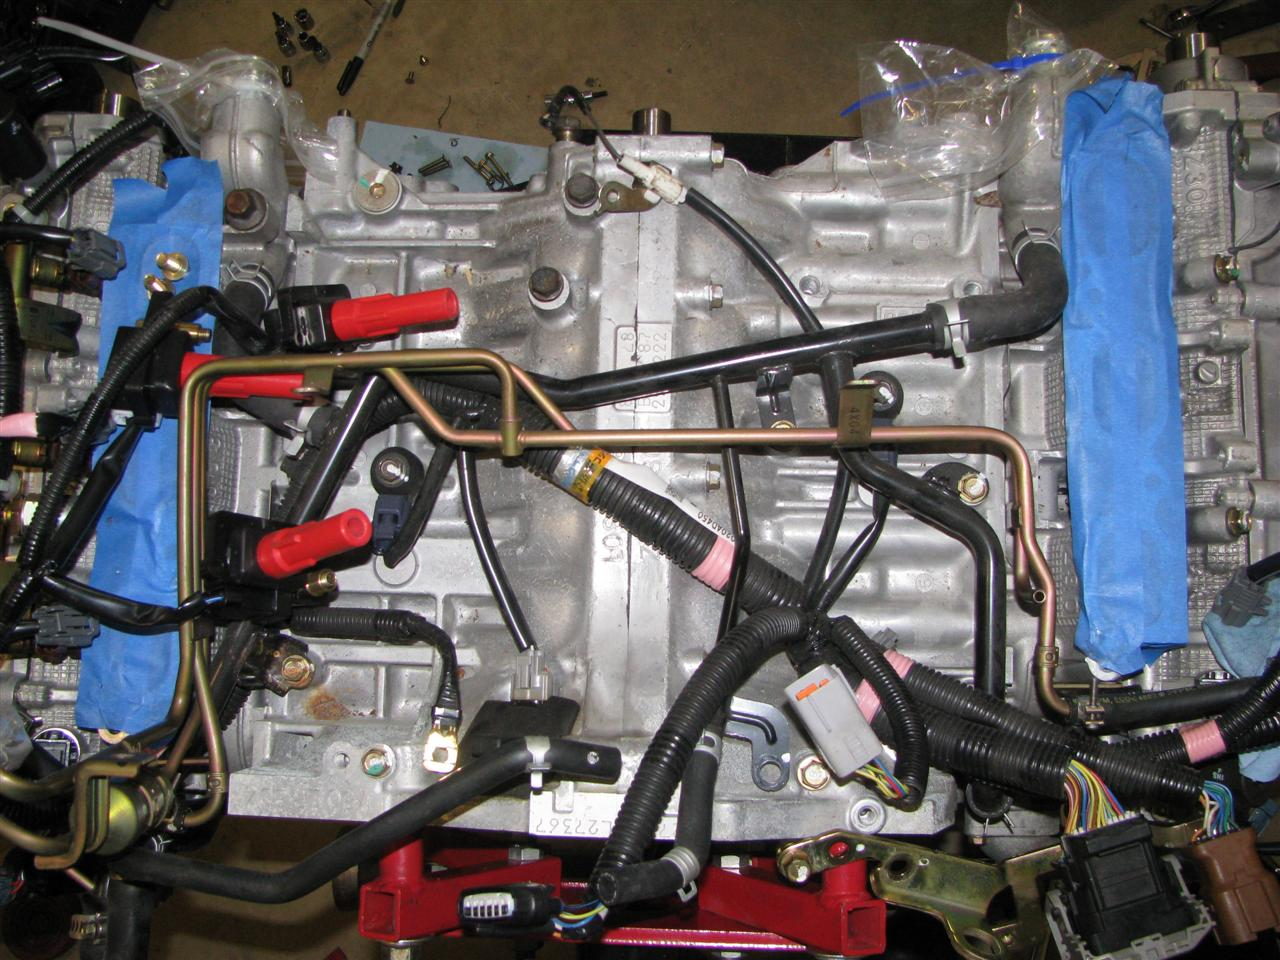 2006 Subaru Impreza Wrx Engine Wiring Harness 45 Diagram Gc8 Teardown Routing1 The H6 Resource Thread Page 55 Nasioc 2007 At